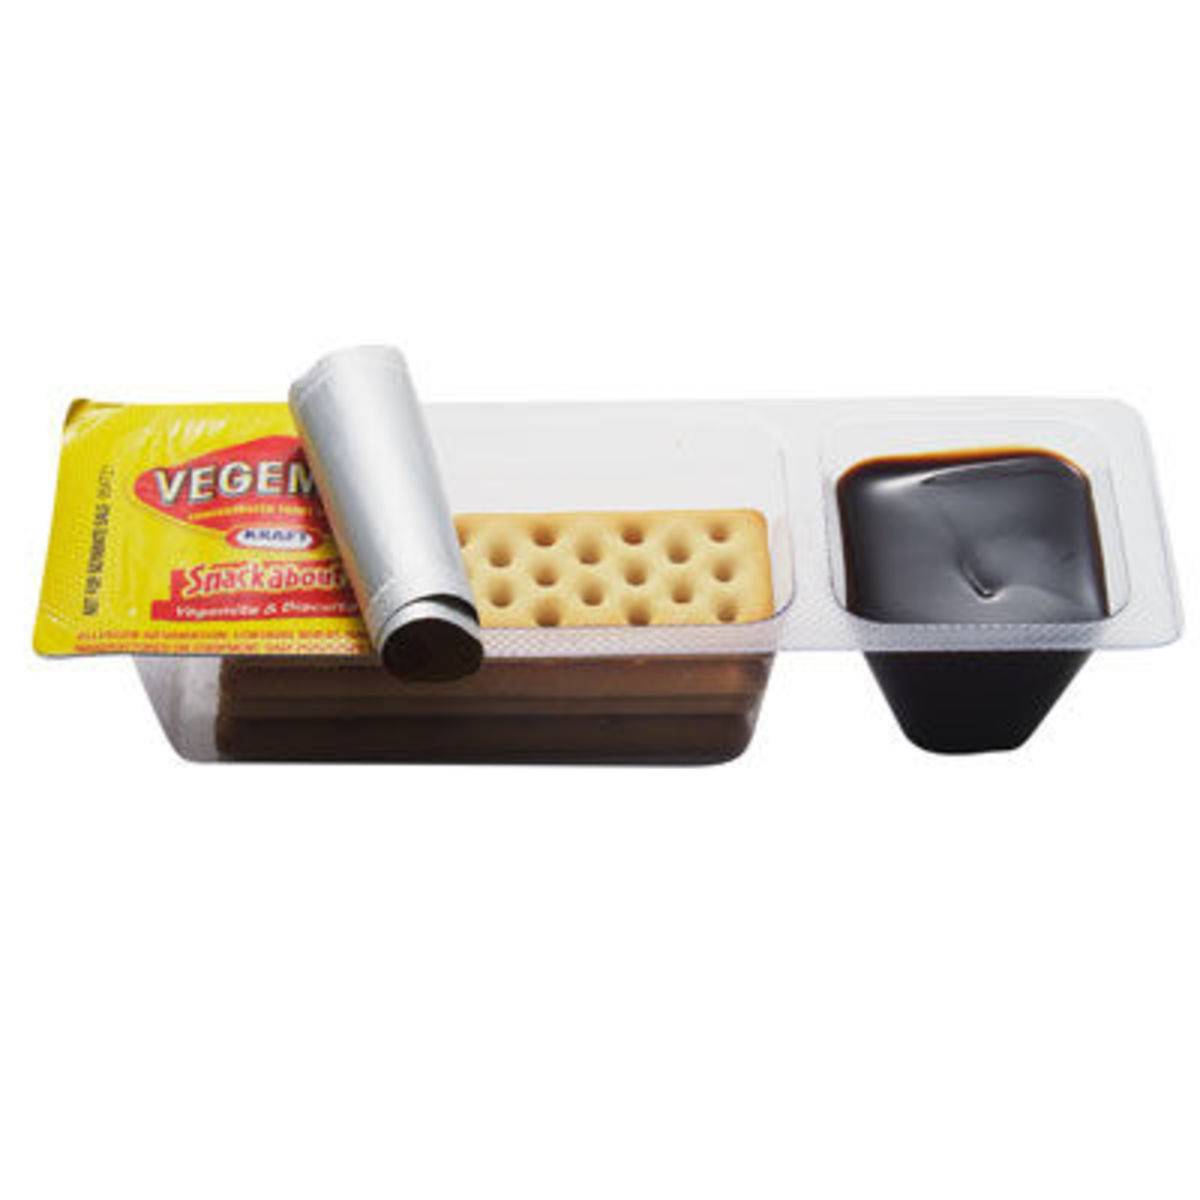 A convenient way to enjoy Vegemite and dry biscuits/crackers on-the-go.  These pre-packaged Vegemite snacks are an Aussie schoolyard recess staple.